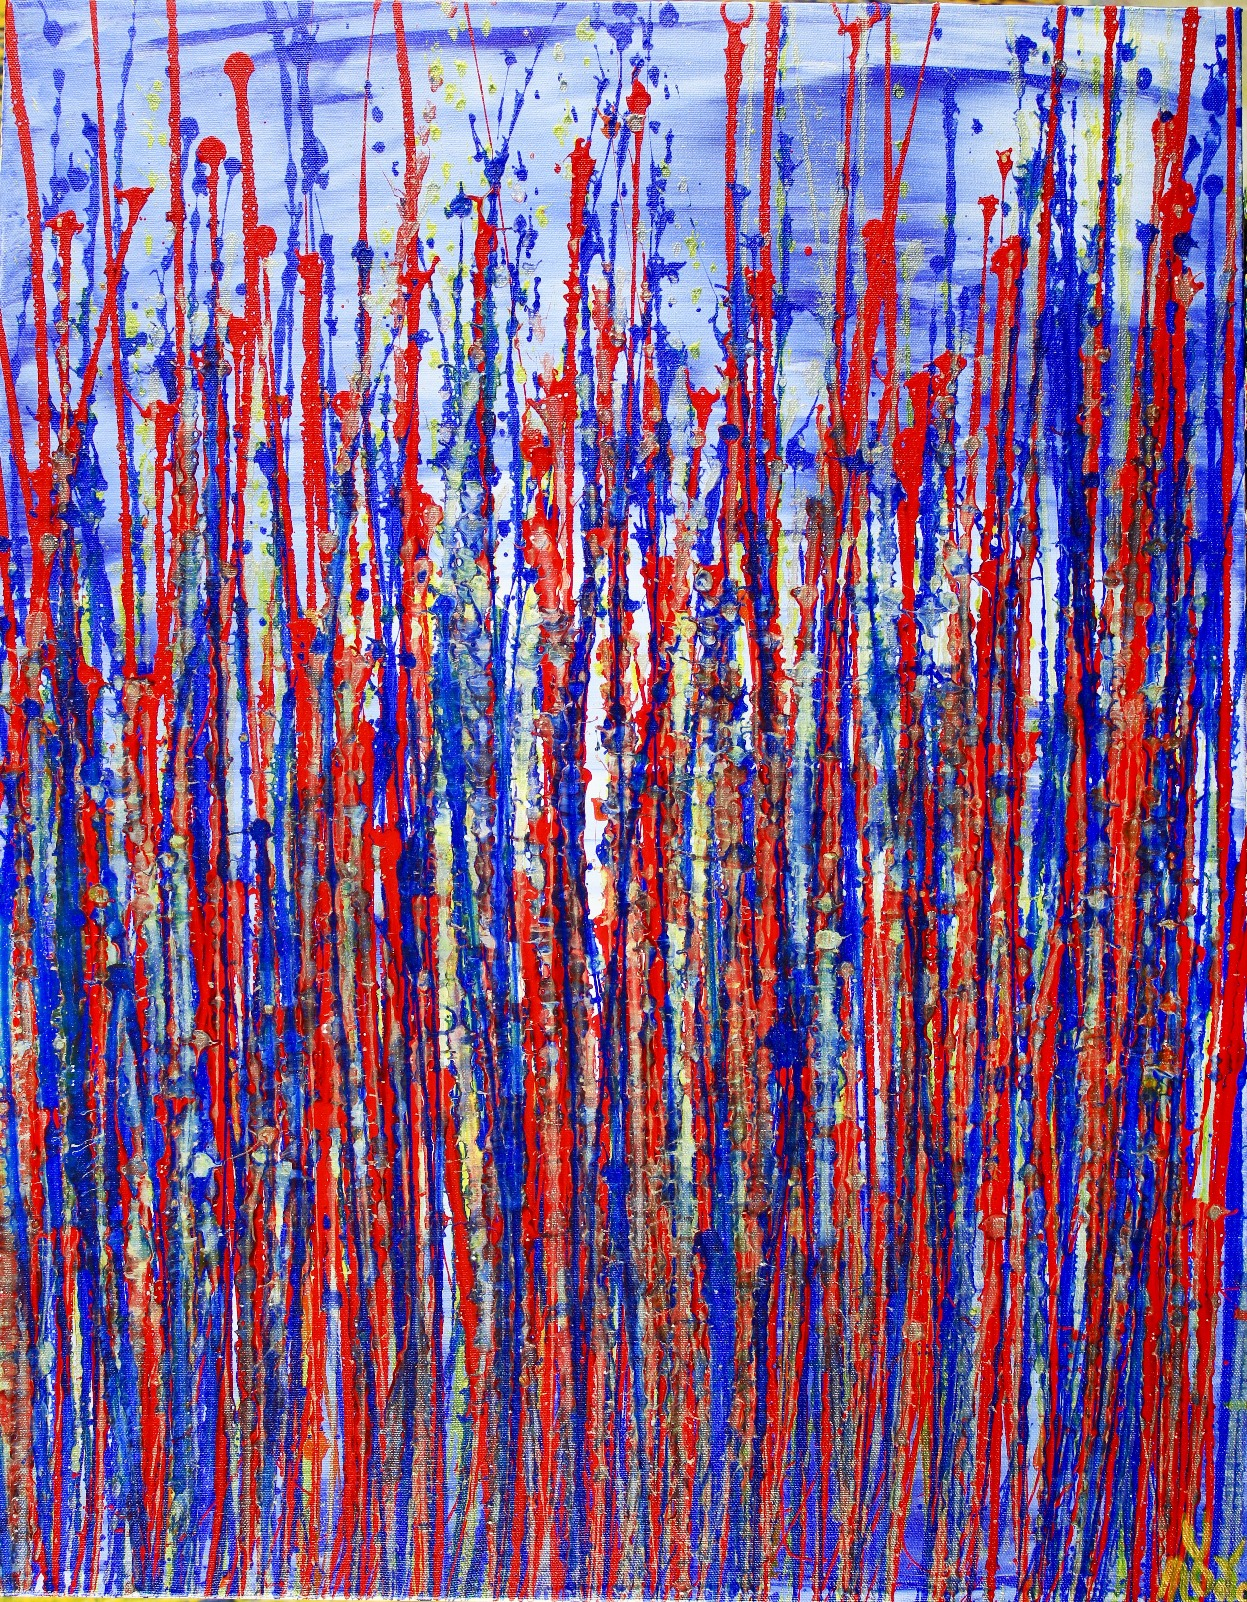 FULL CANVAS - Red and blue reflections by Nestor Toro (2019) in Los Angeles